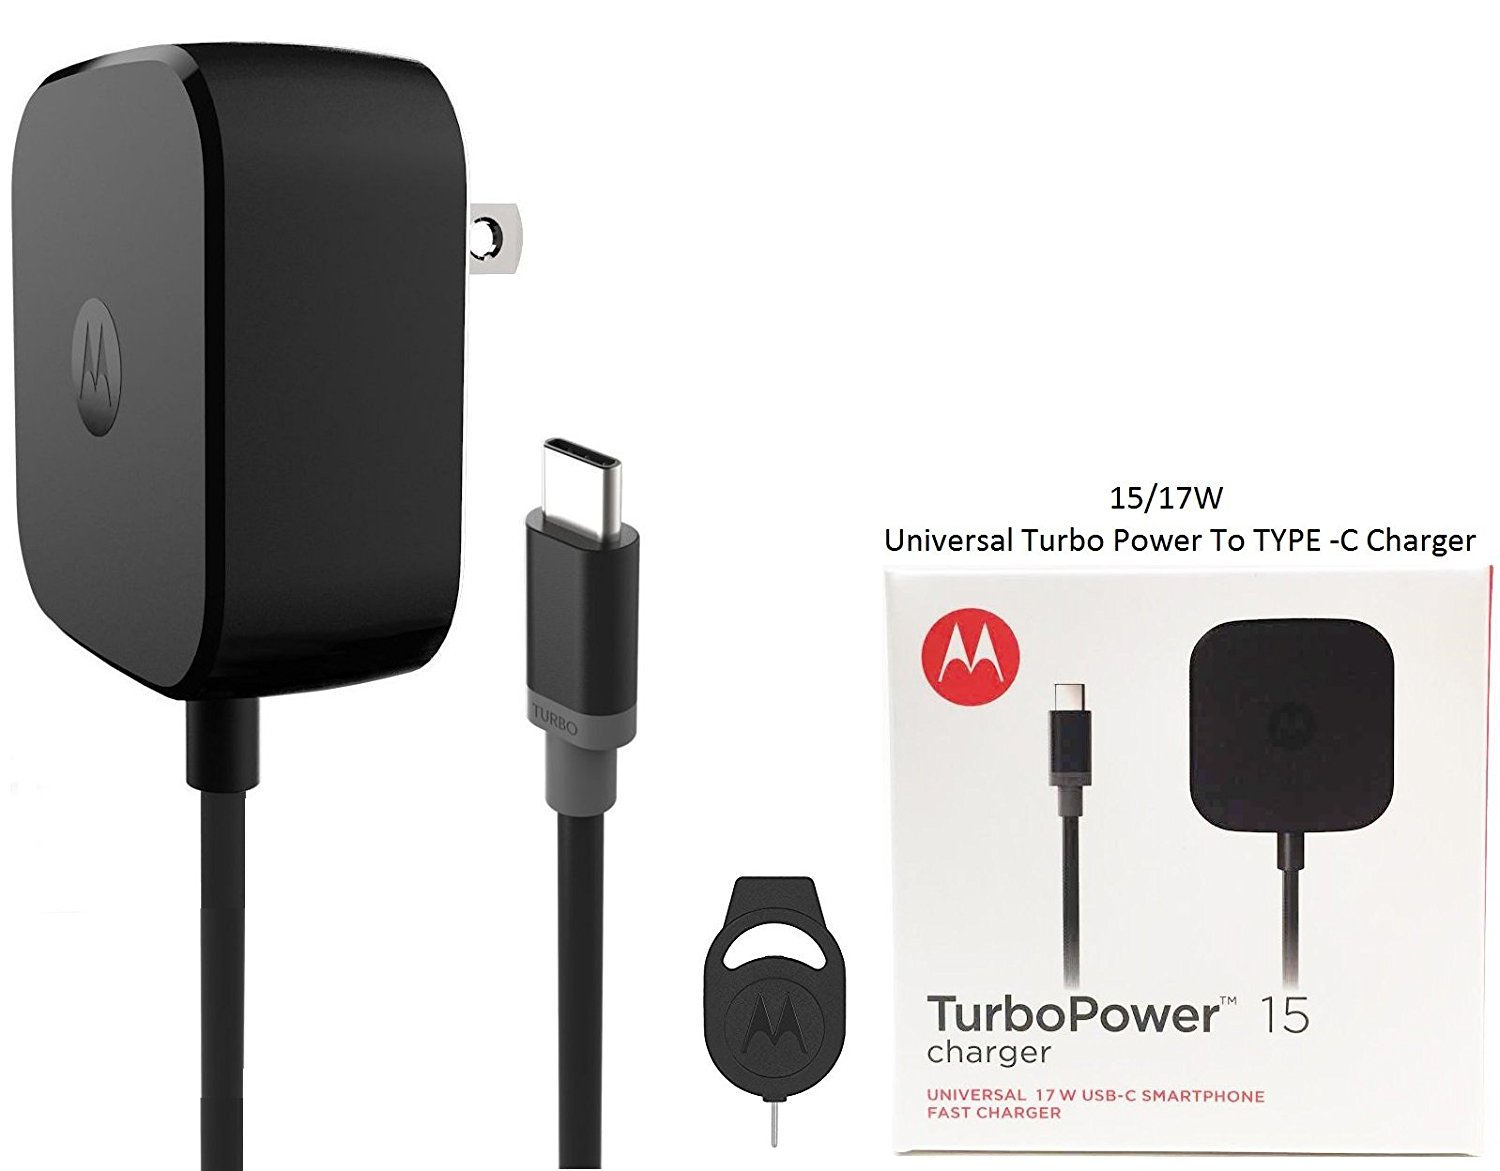 Motorola TurboPower TYPE C Fast Charger 15/17W & Moto SIM Ejector - For Moto Z Force/Z Droid/Z Play - (Retail Packing)